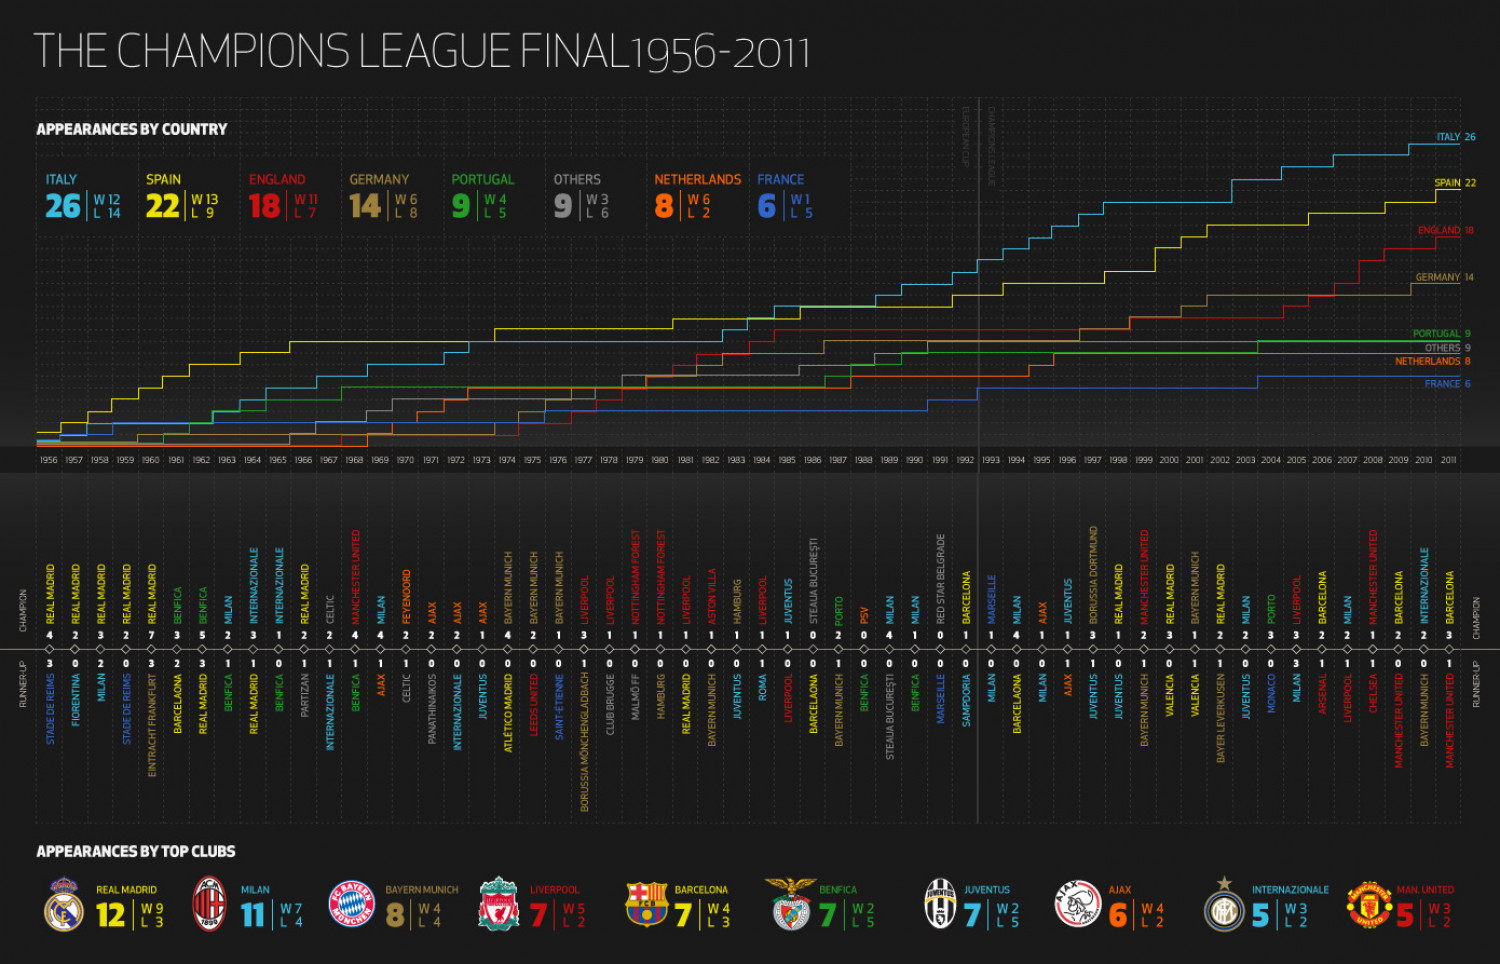 The Champions League Final 1956-2011 Infographic